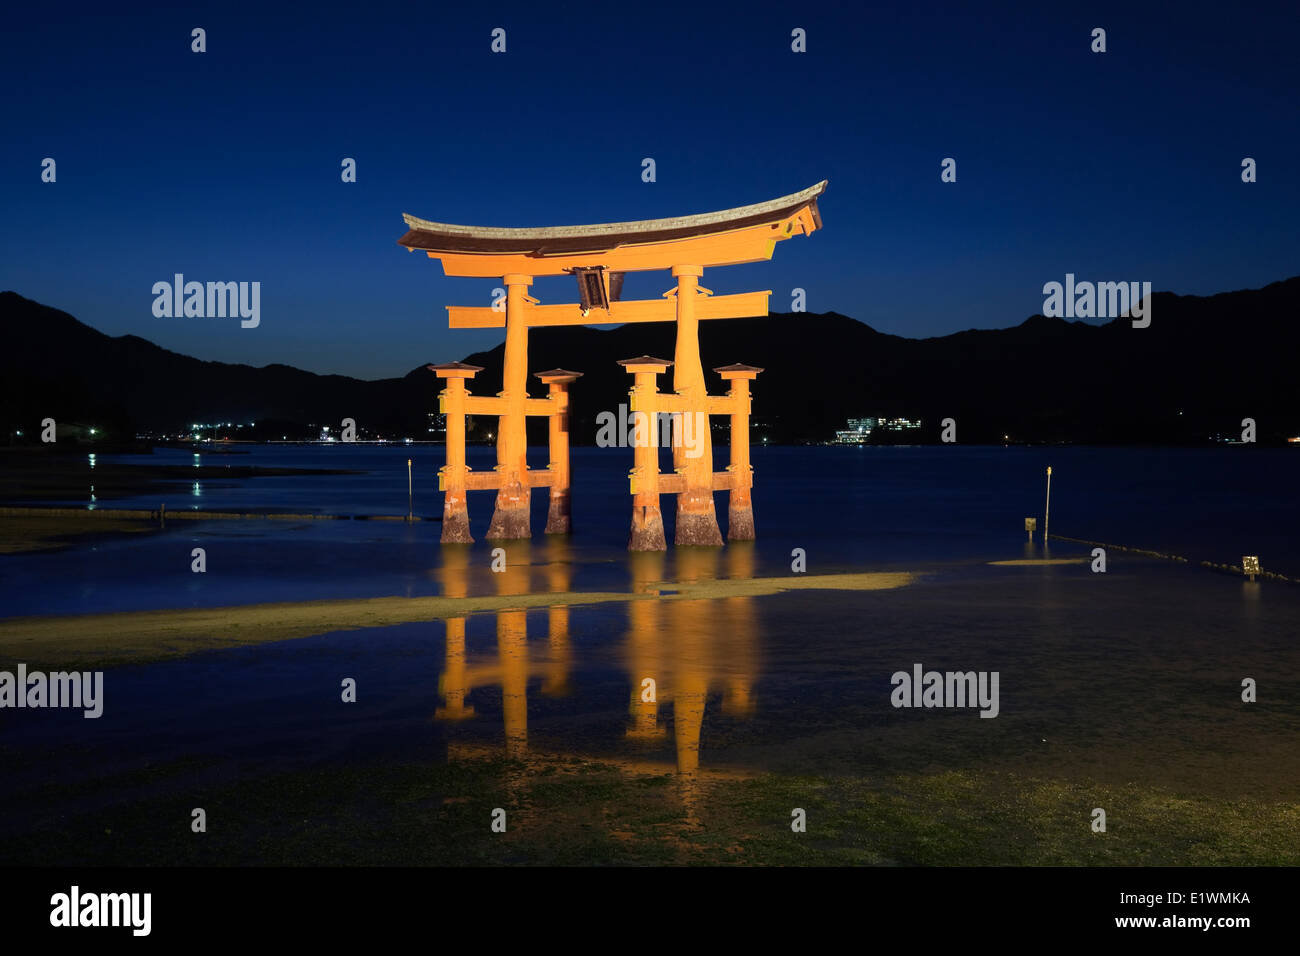 Nightime scene of the giant torii gate that is part of the Itsukushima Shrine complex on the island of Miyajima, - Stock Image